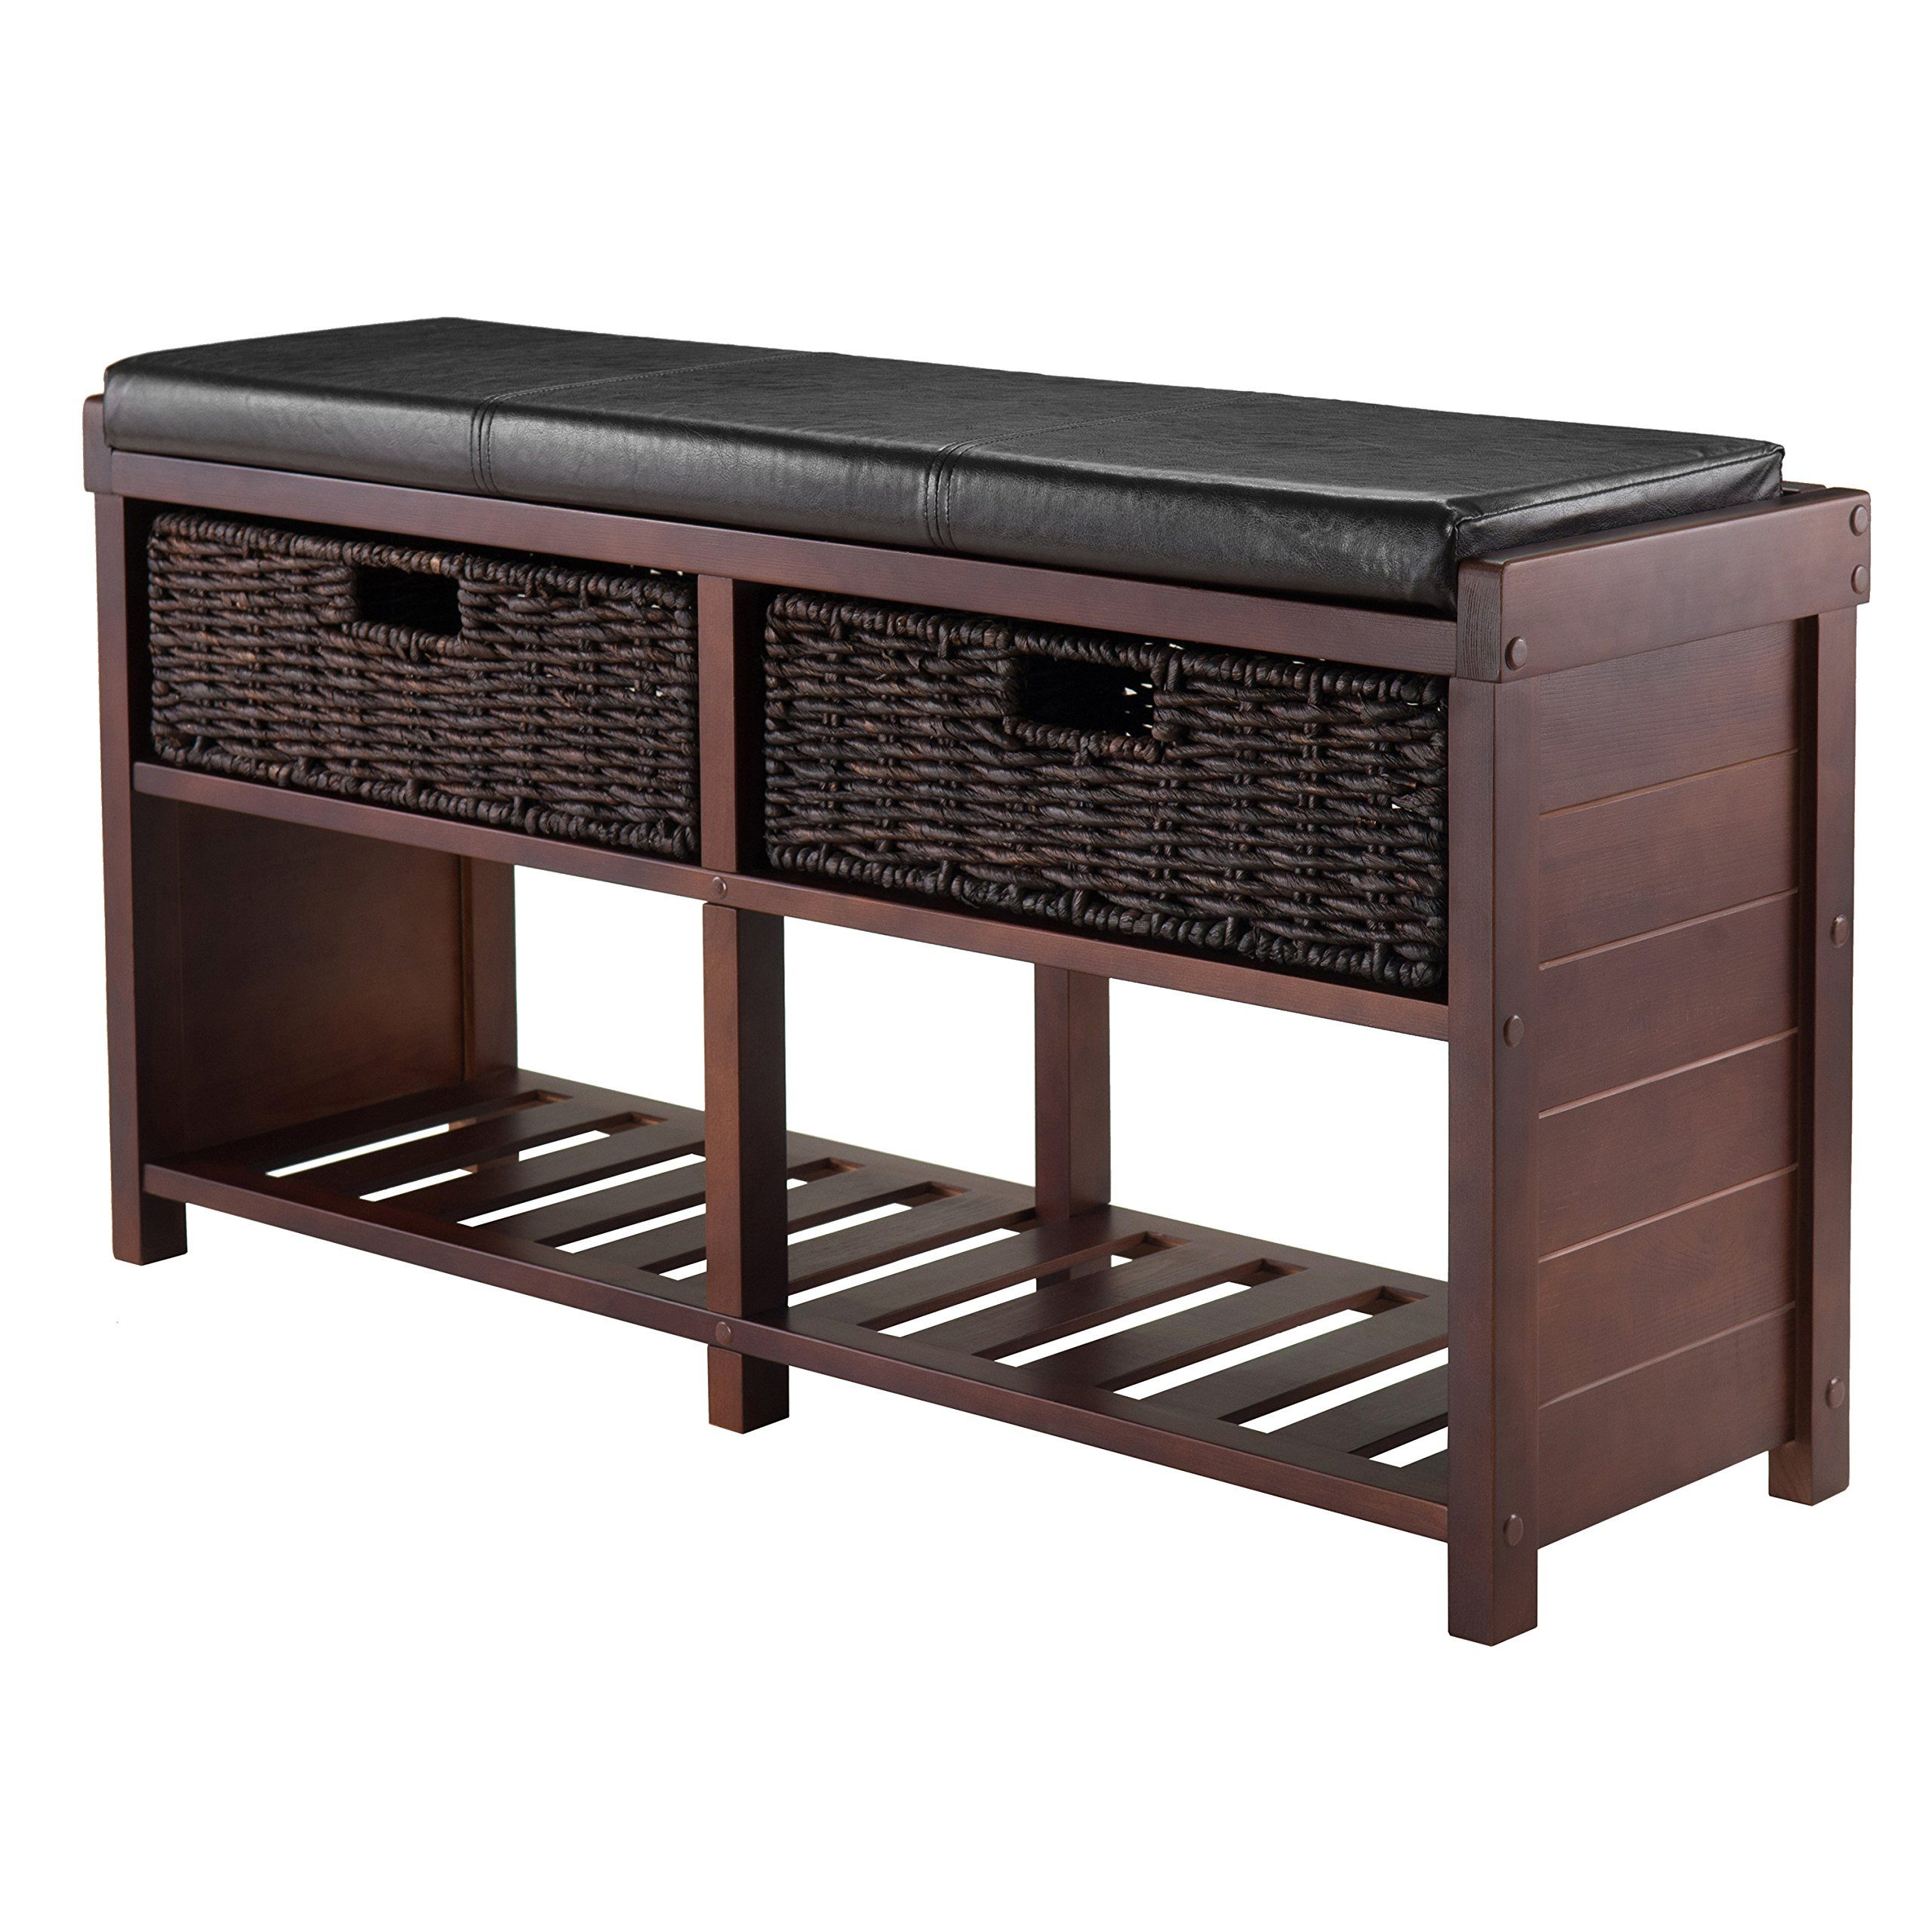 Amazon.com - Winsome Wood Colin Cushion Bench with Baskets 38.2 x ...